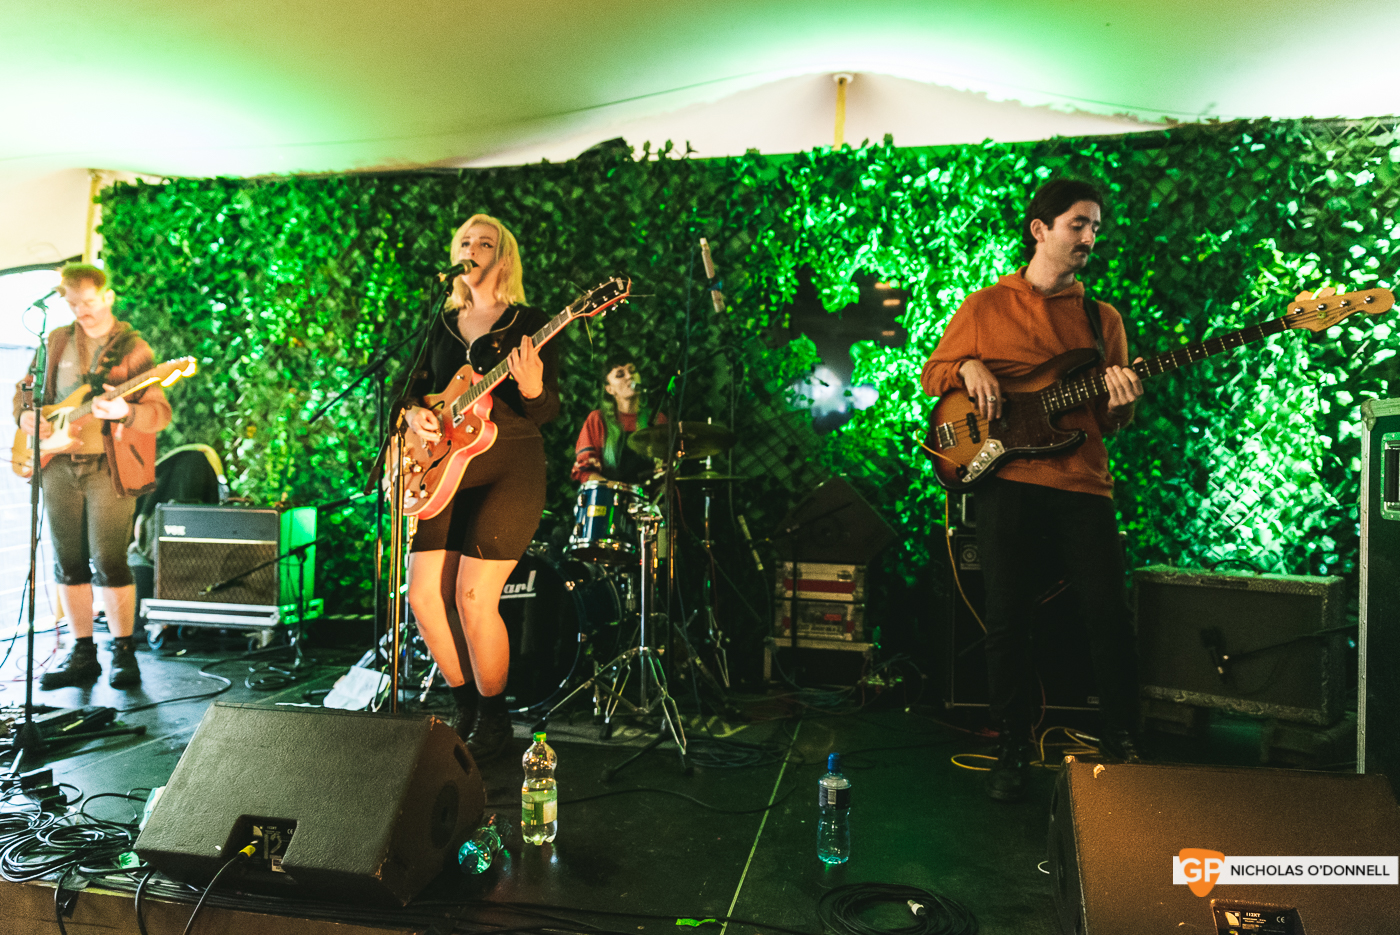 Elizabeth Moen performing on the Unfiltered stage at KnockanStockan 19. Photos by Nicholas O_Donell. (5 of 6)